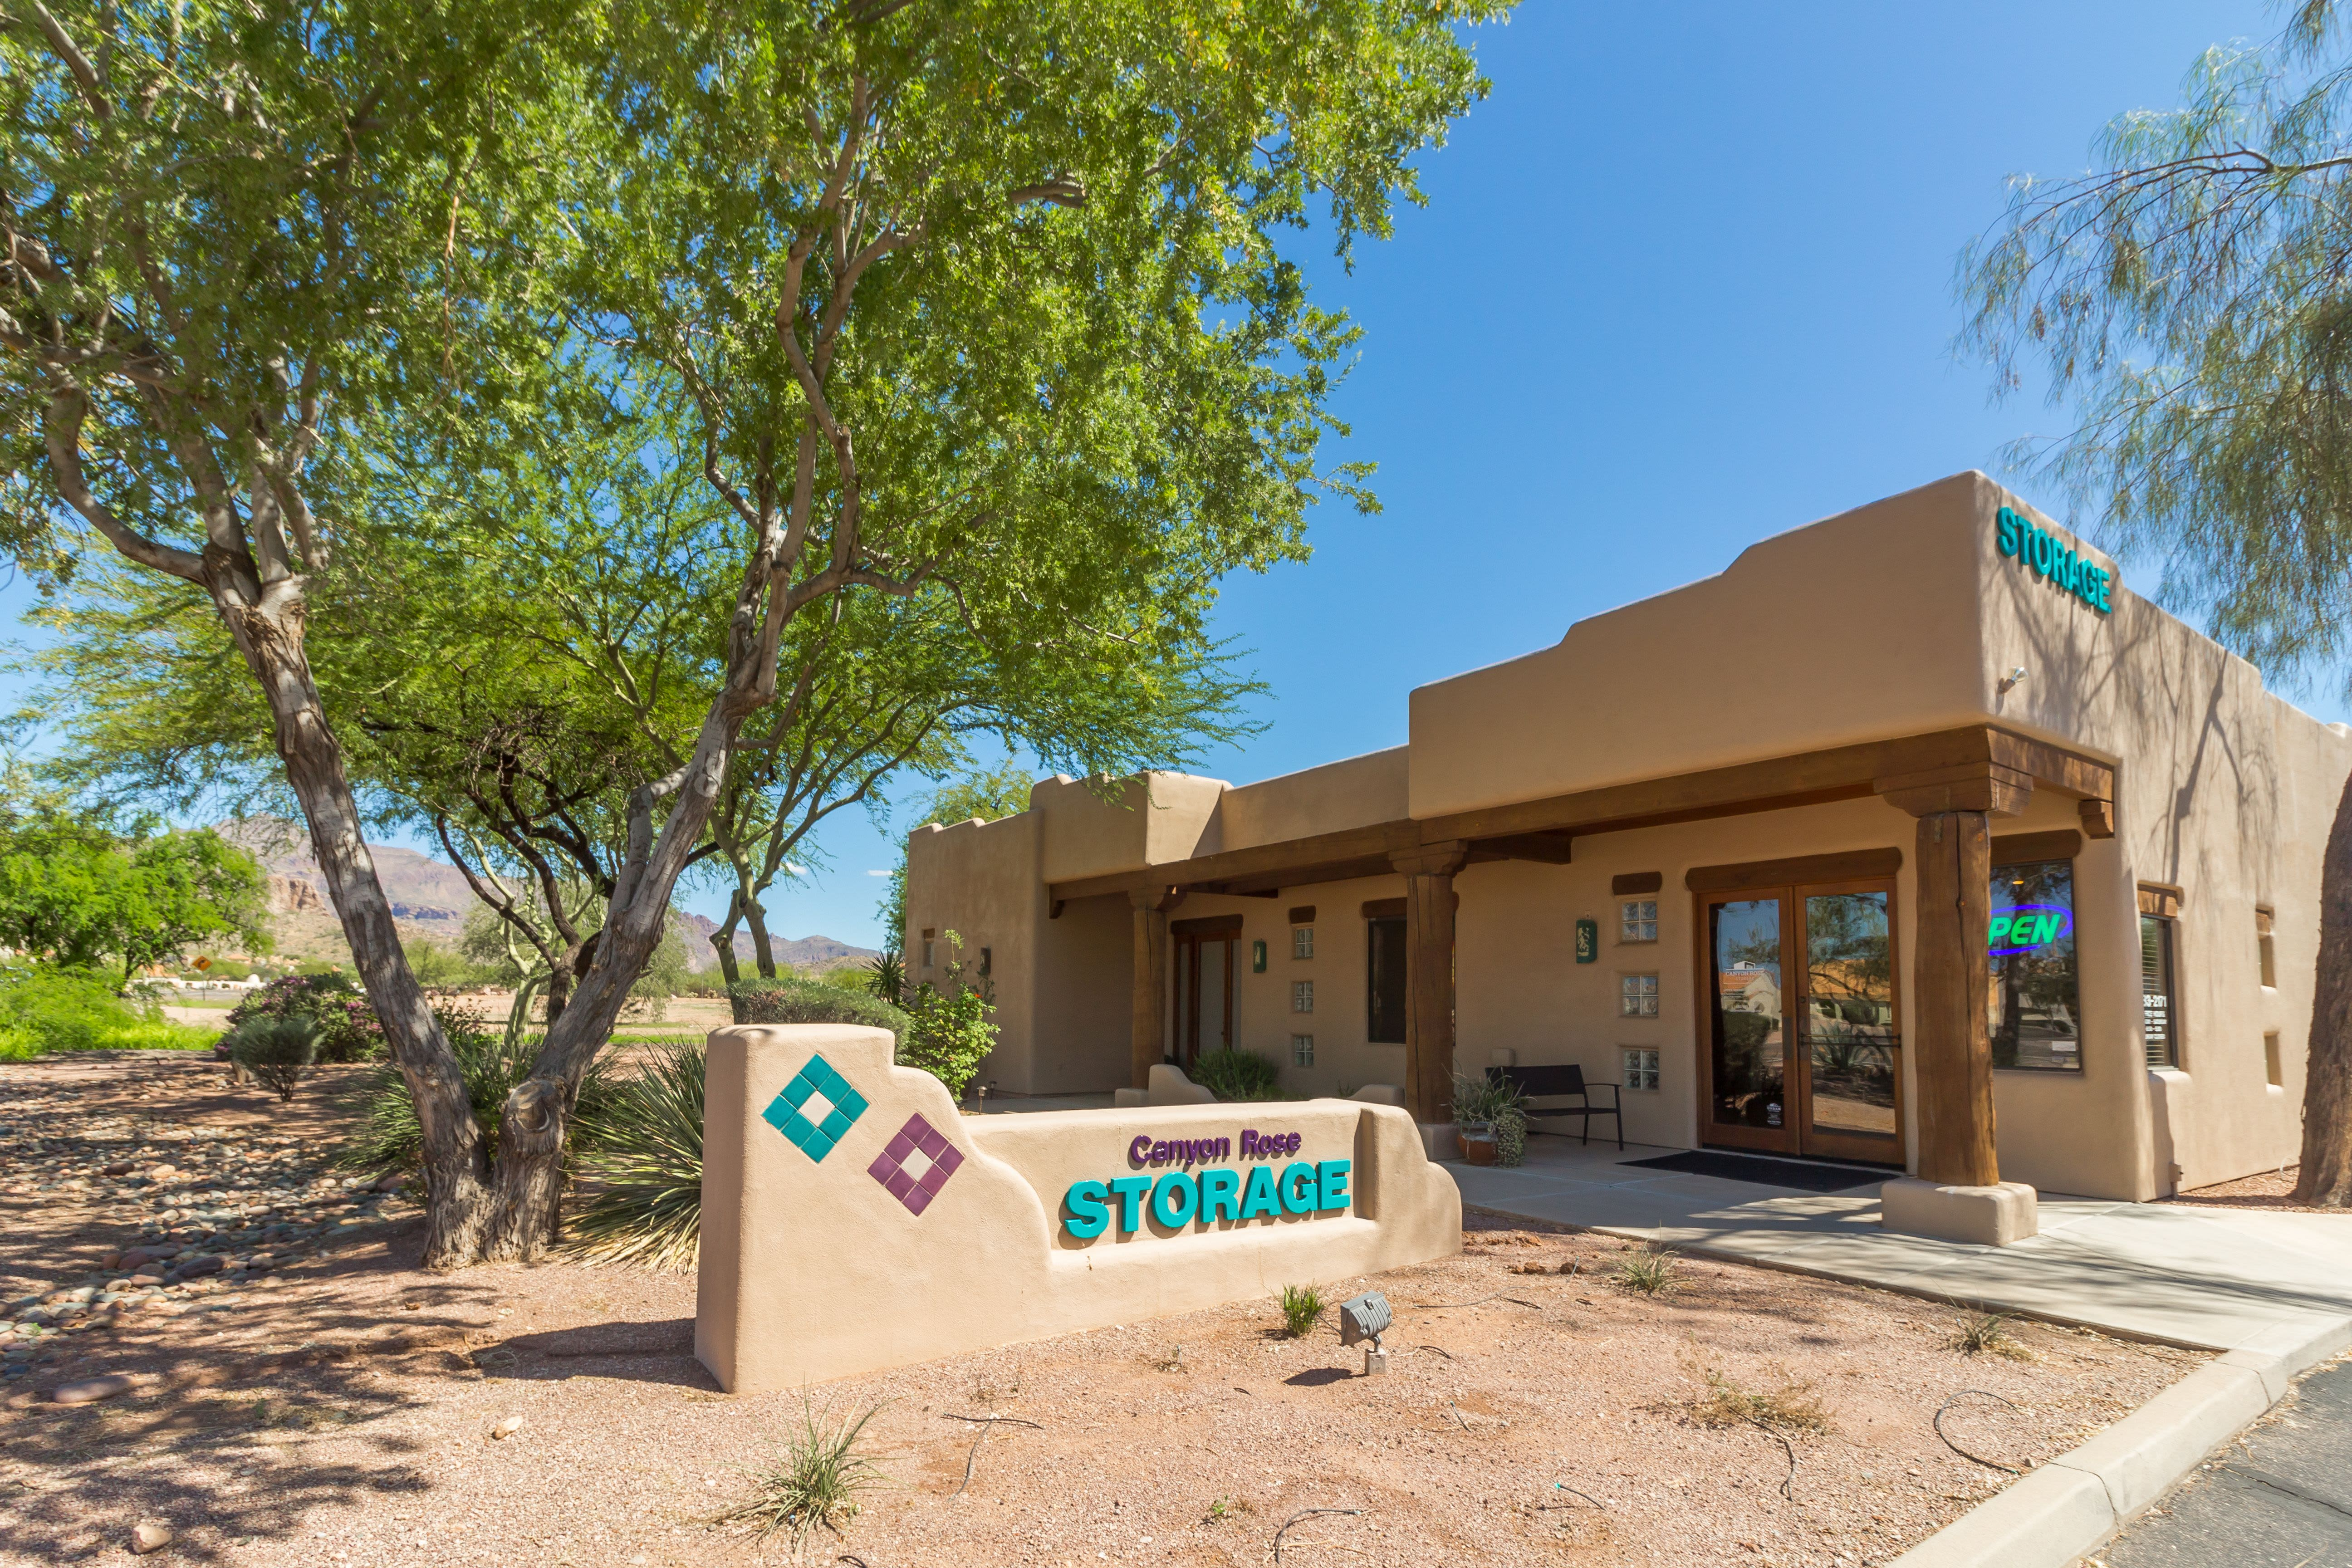 Self storage for all of your needs at Canyon Rose Storage in Gold Canyon, Arizona